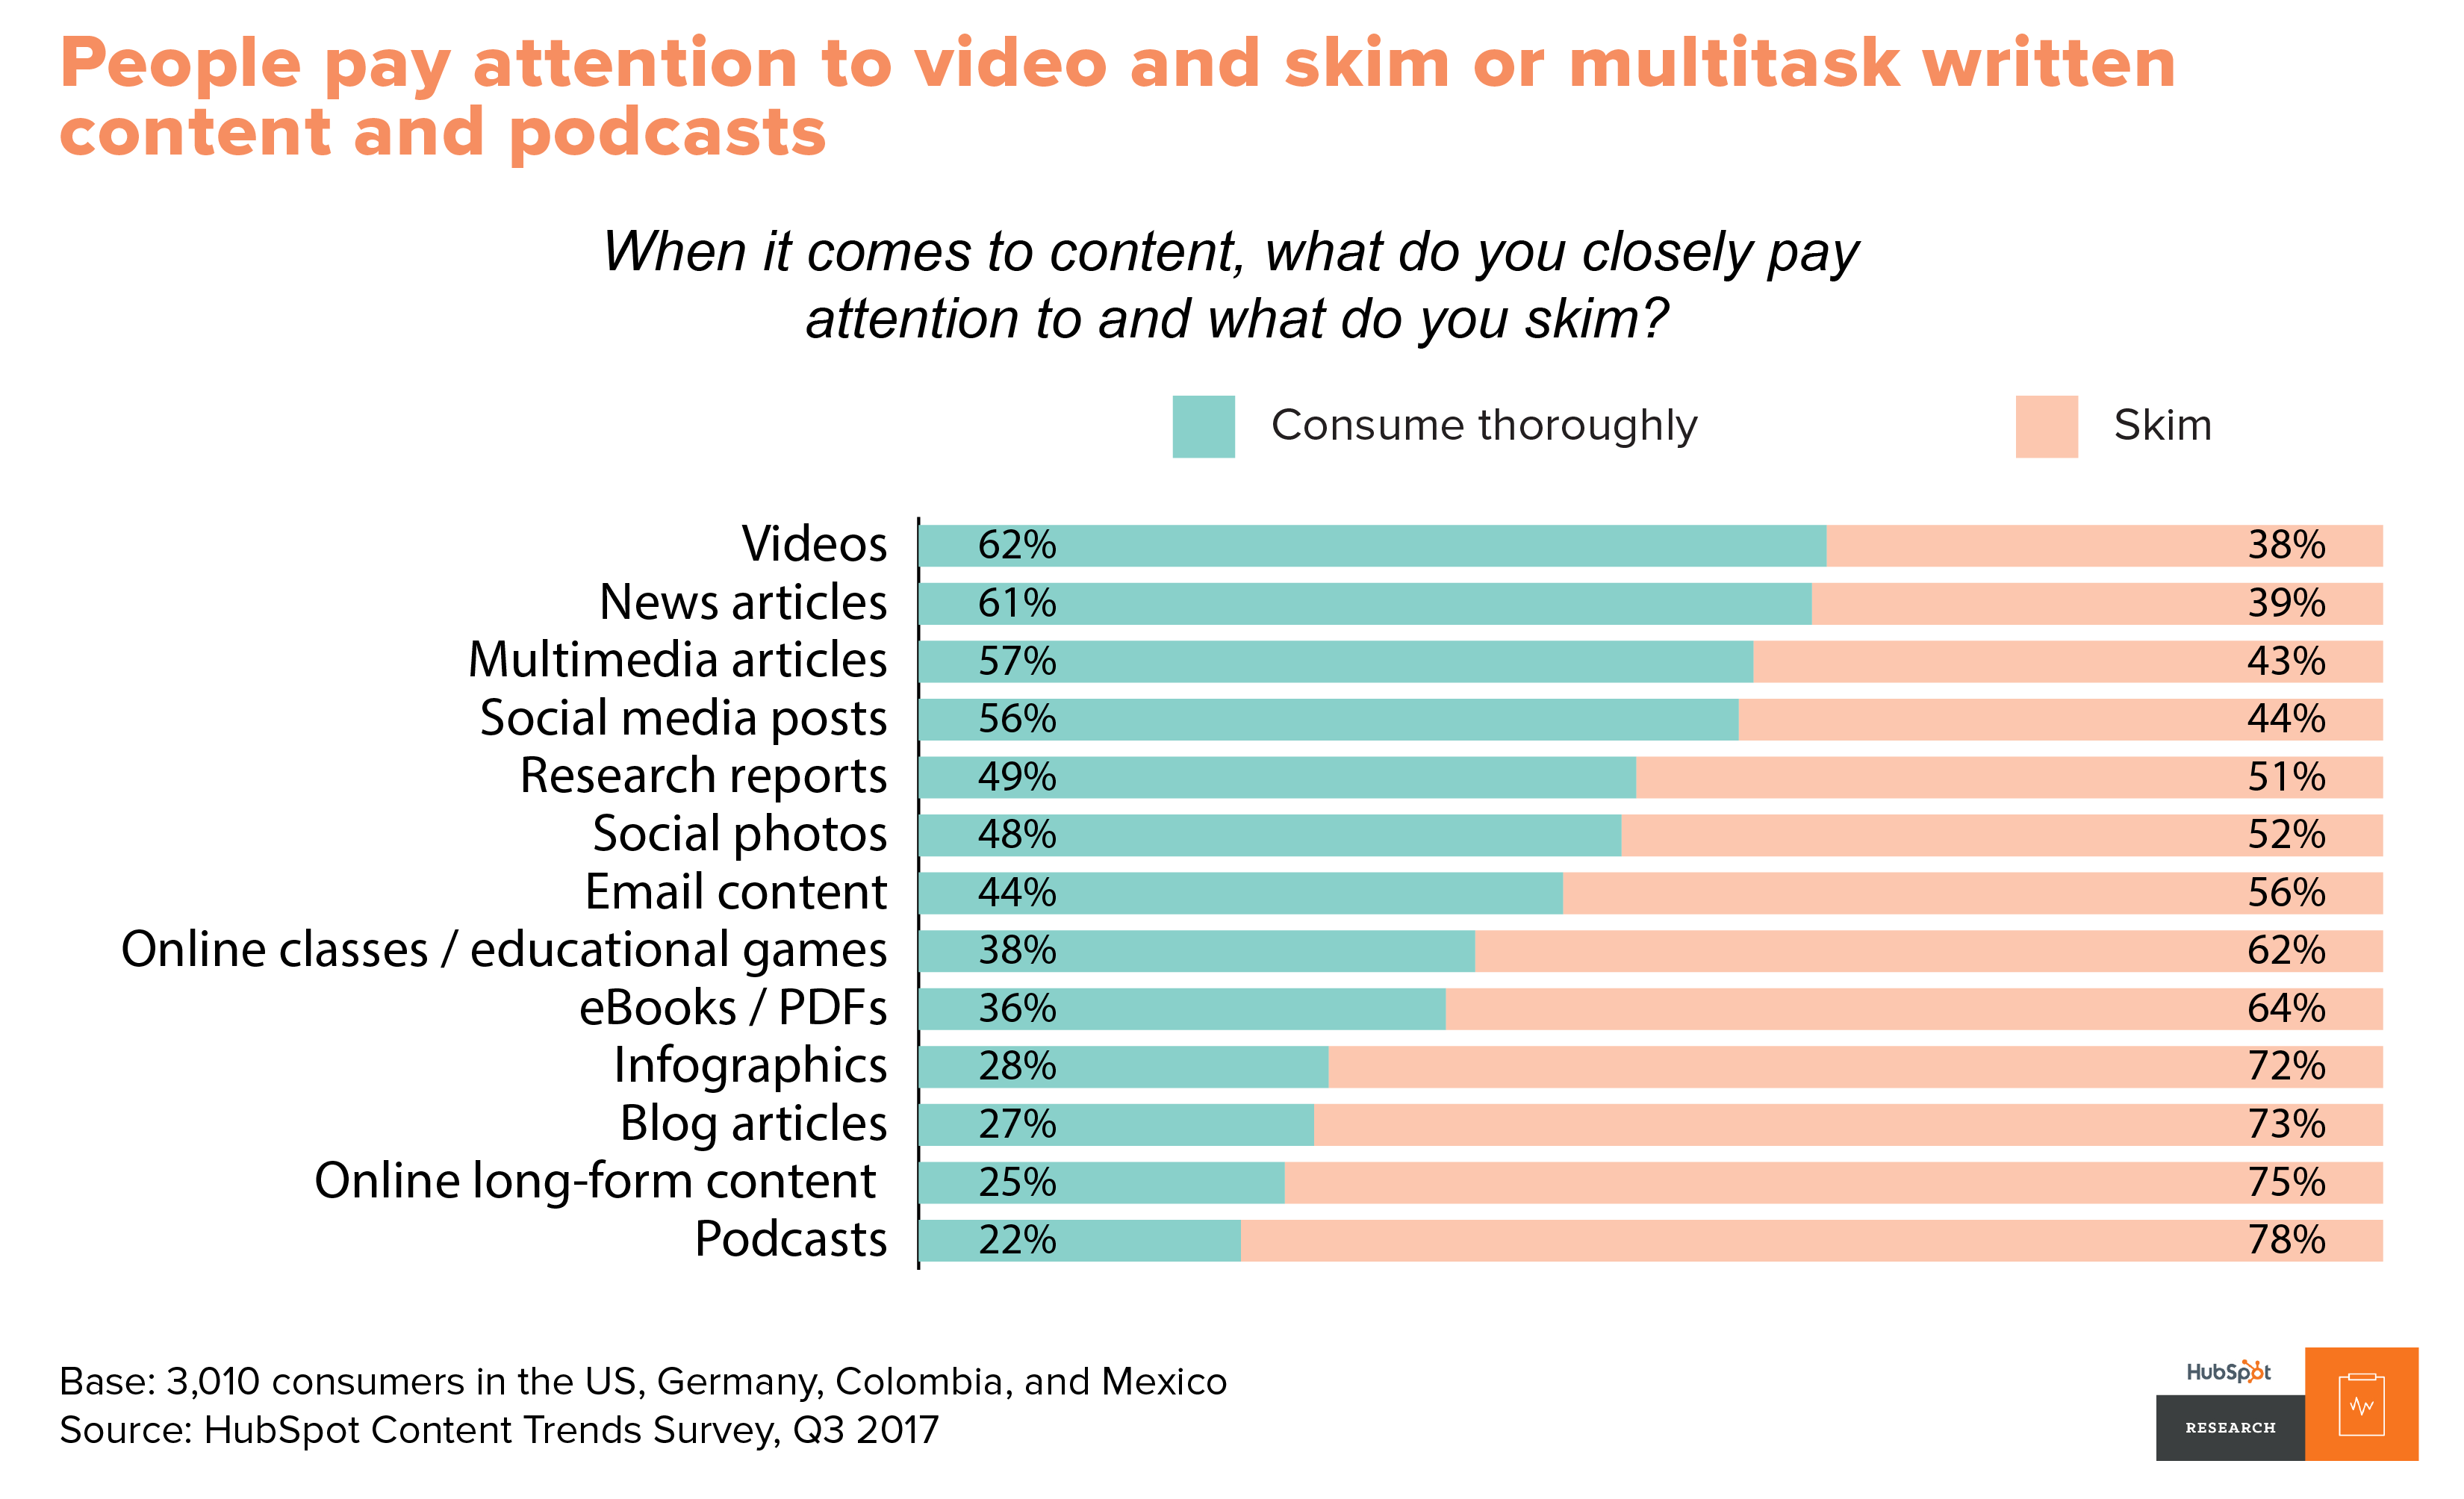 People pay attention to video and skim written content